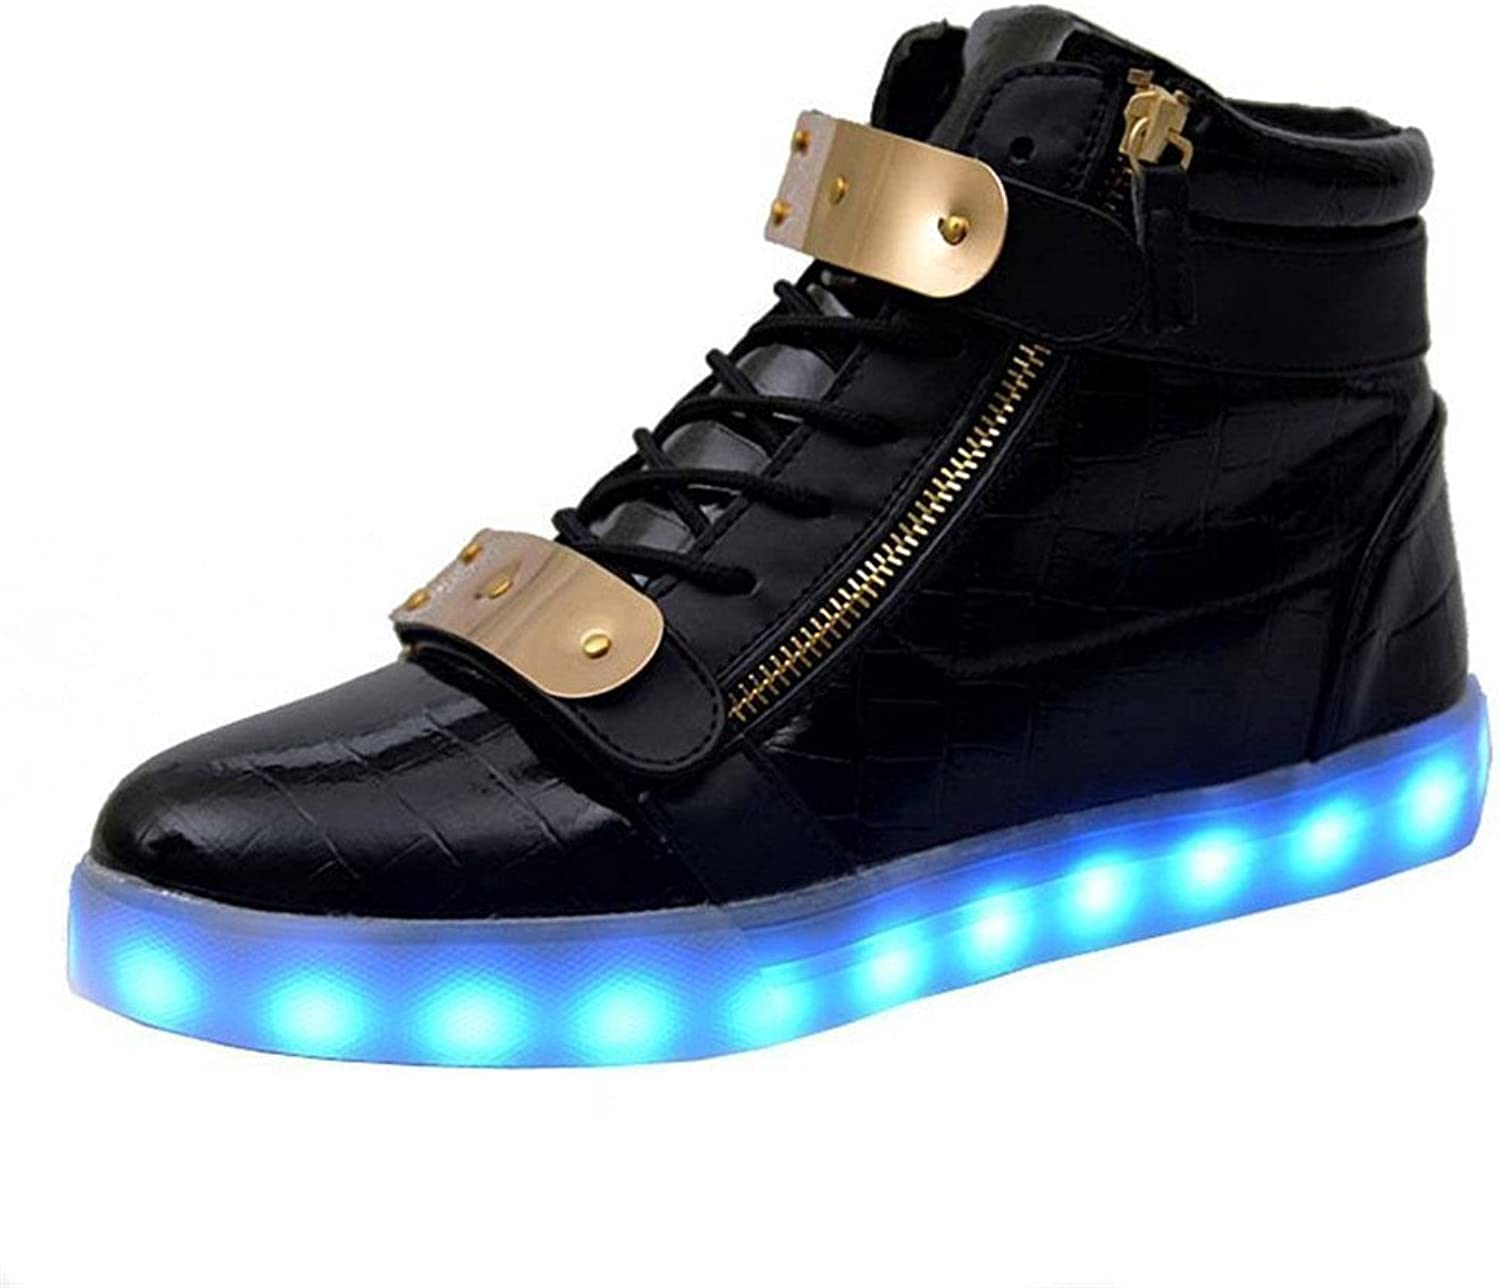 Jedi fight back LED Light Up shoes Lace Up Fashion Casual High Top Sneakers shoes for Men Women